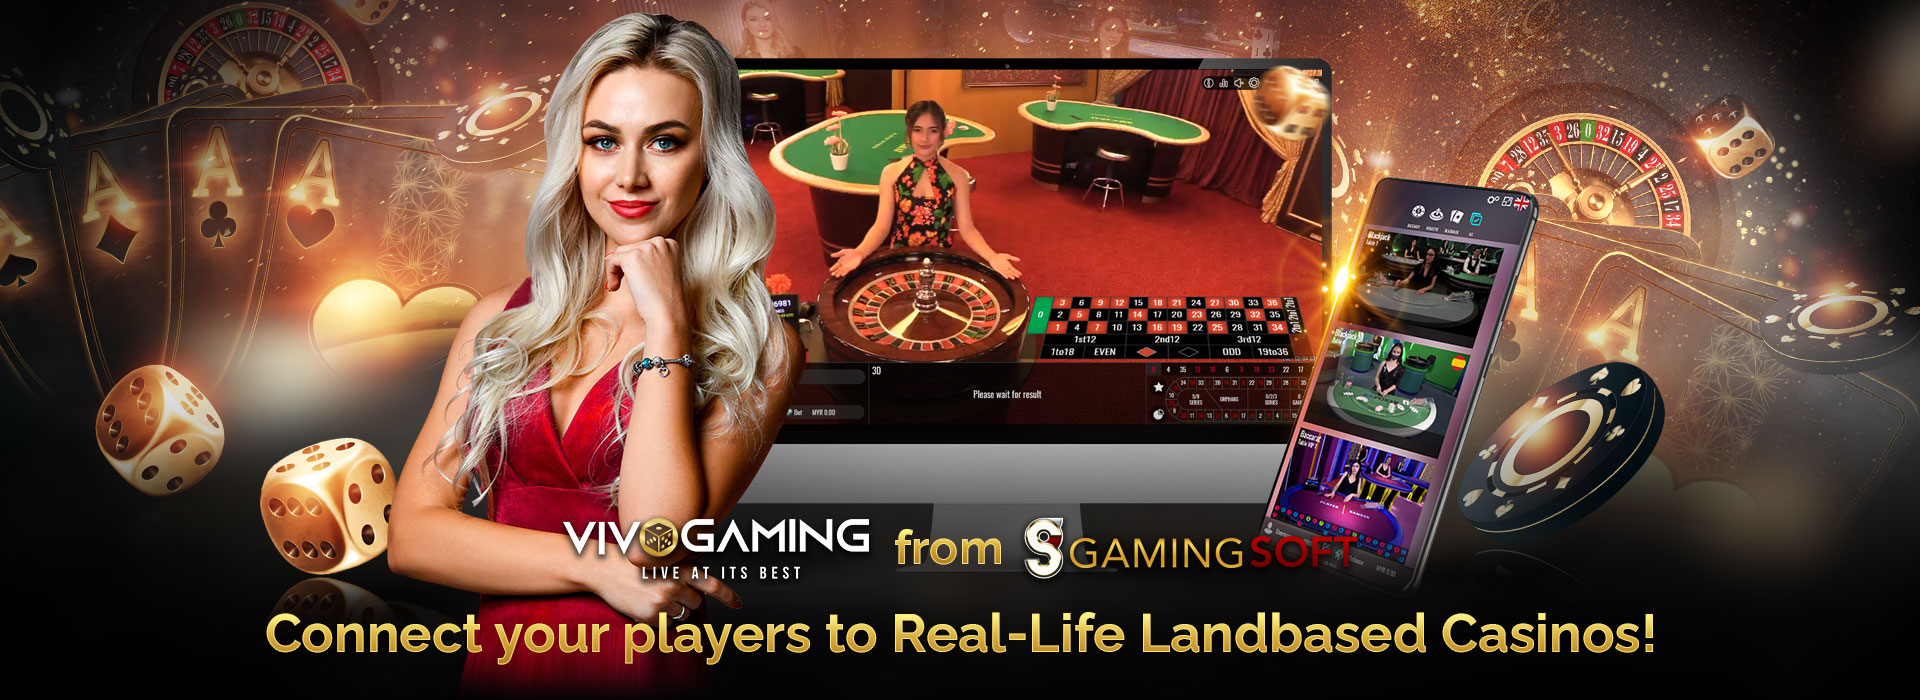 Our Live Casino Partner Vivo Gaming Allows you to Connect Your Region-based Casino Platform to the Global Online Gaming Market - GamingSoft